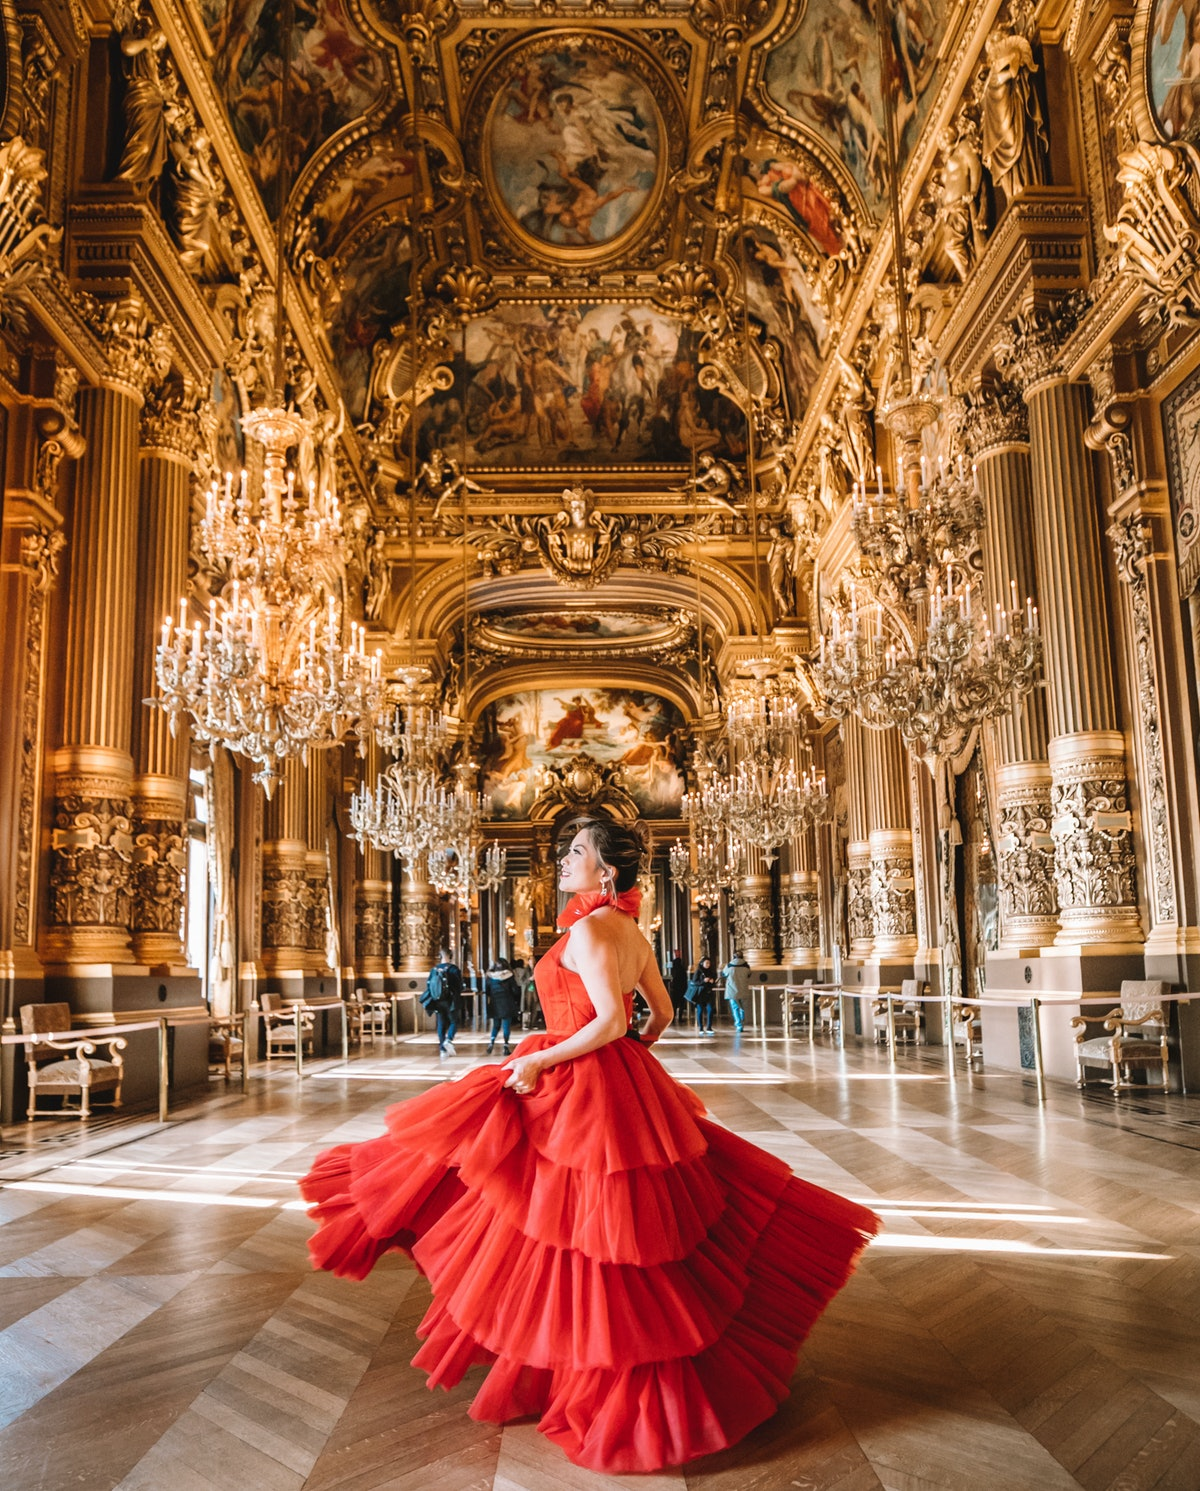 A woman in a red tulle gown twirls in an elegant ballroom.